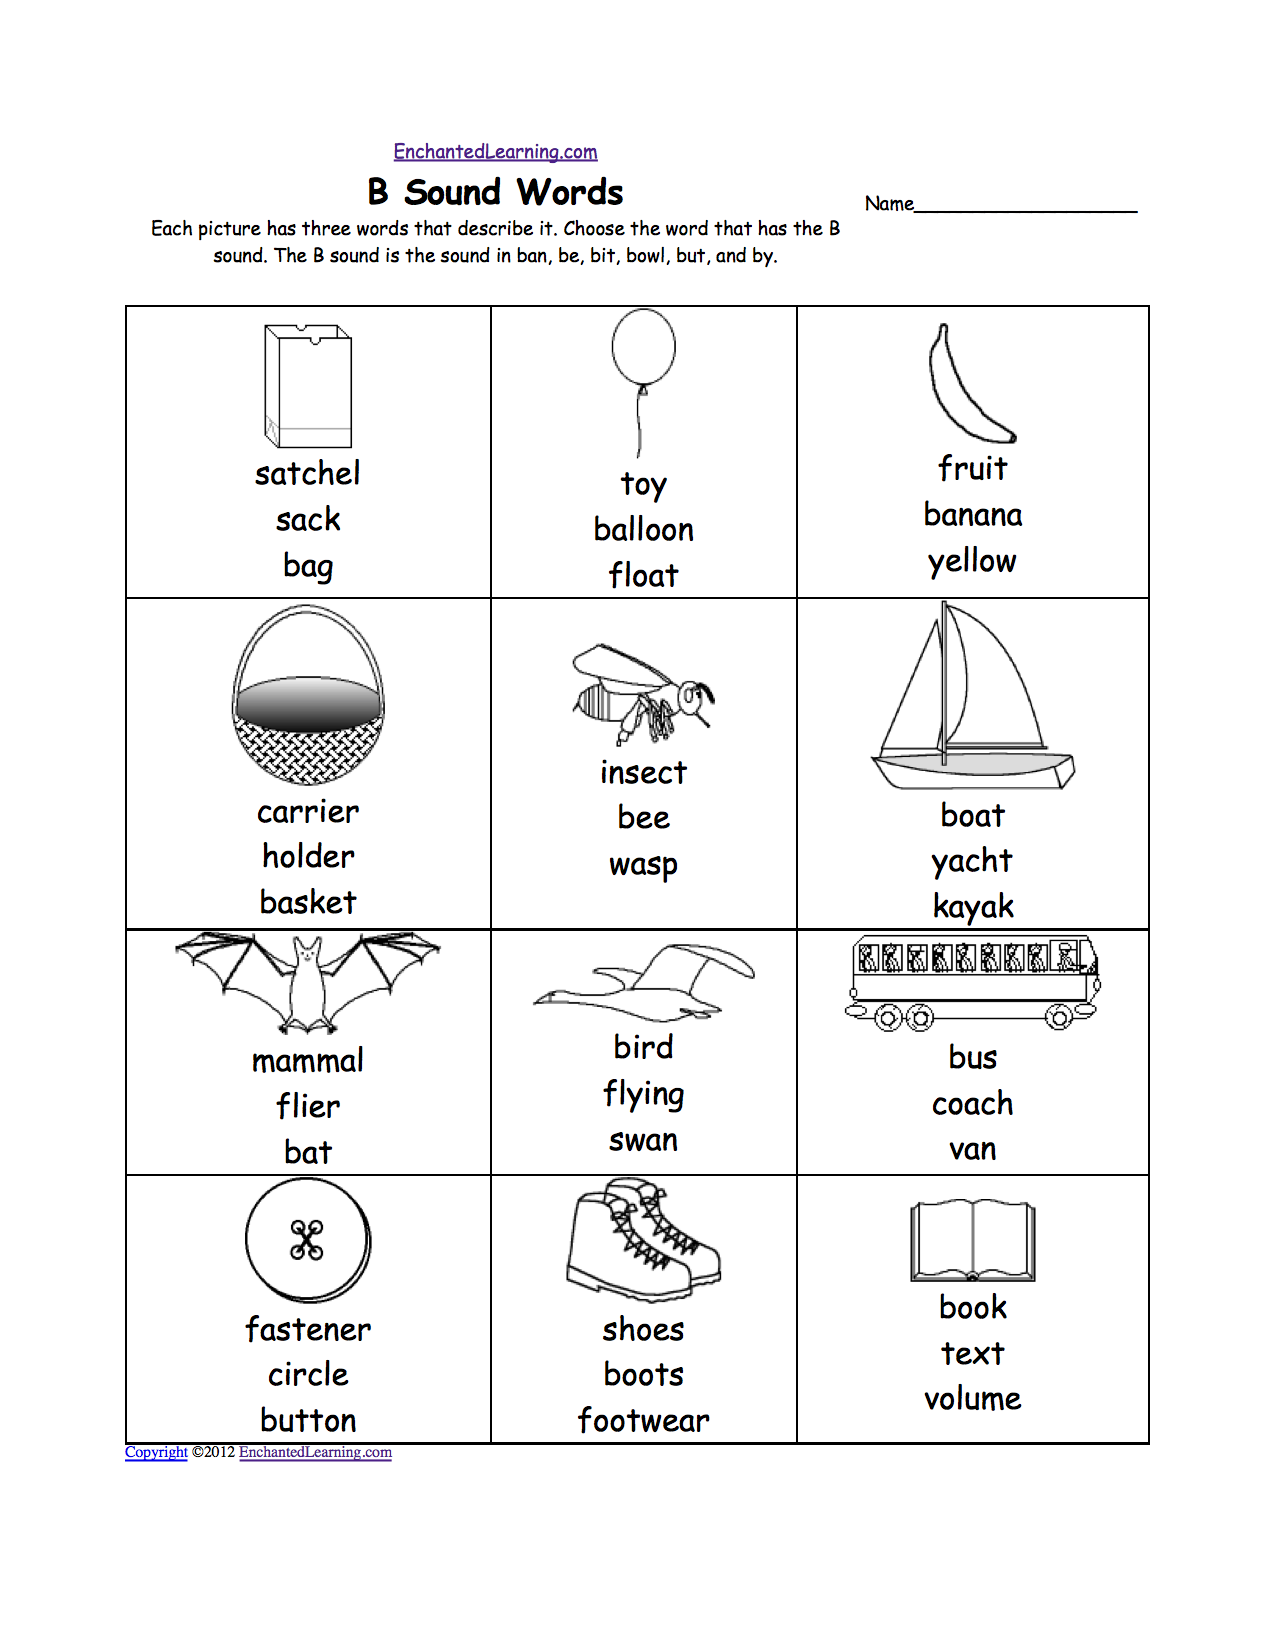 Aldiablosus  Nice Phonics Worksheets Multiple Choice Worksheets To Print  With Lovely Quotbquot Sound Phonics Worksheet Multiple Choice Each Picture Has Three Words That Describe It Choose The Word That Has A Quotbquot Sound The Quotbquot Sound Is The Sound  With Extraordinary Key Stage  Writing Worksheets Also Bar Graph And Pictograph Worksheets In Addition Letter I Worksheet For Preschool And Career Vocabulary Worksheets As Well As Numbers  Worksheets Additionally Worksheet On Food Chain From Enchantedlearningcom With Aldiablosus  Lovely Phonics Worksheets Multiple Choice Worksheets To Print  With Extraordinary Quotbquot Sound Phonics Worksheet Multiple Choice Each Picture Has Three Words That Describe It Choose The Word That Has A Quotbquot Sound The Quotbquot Sound Is The Sound  And Nice Key Stage  Writing Worksheets Also Bar Graph And Pictograph Worksheets In Addition Letter I Worksheet For Preschool From Enchantedlearningcom